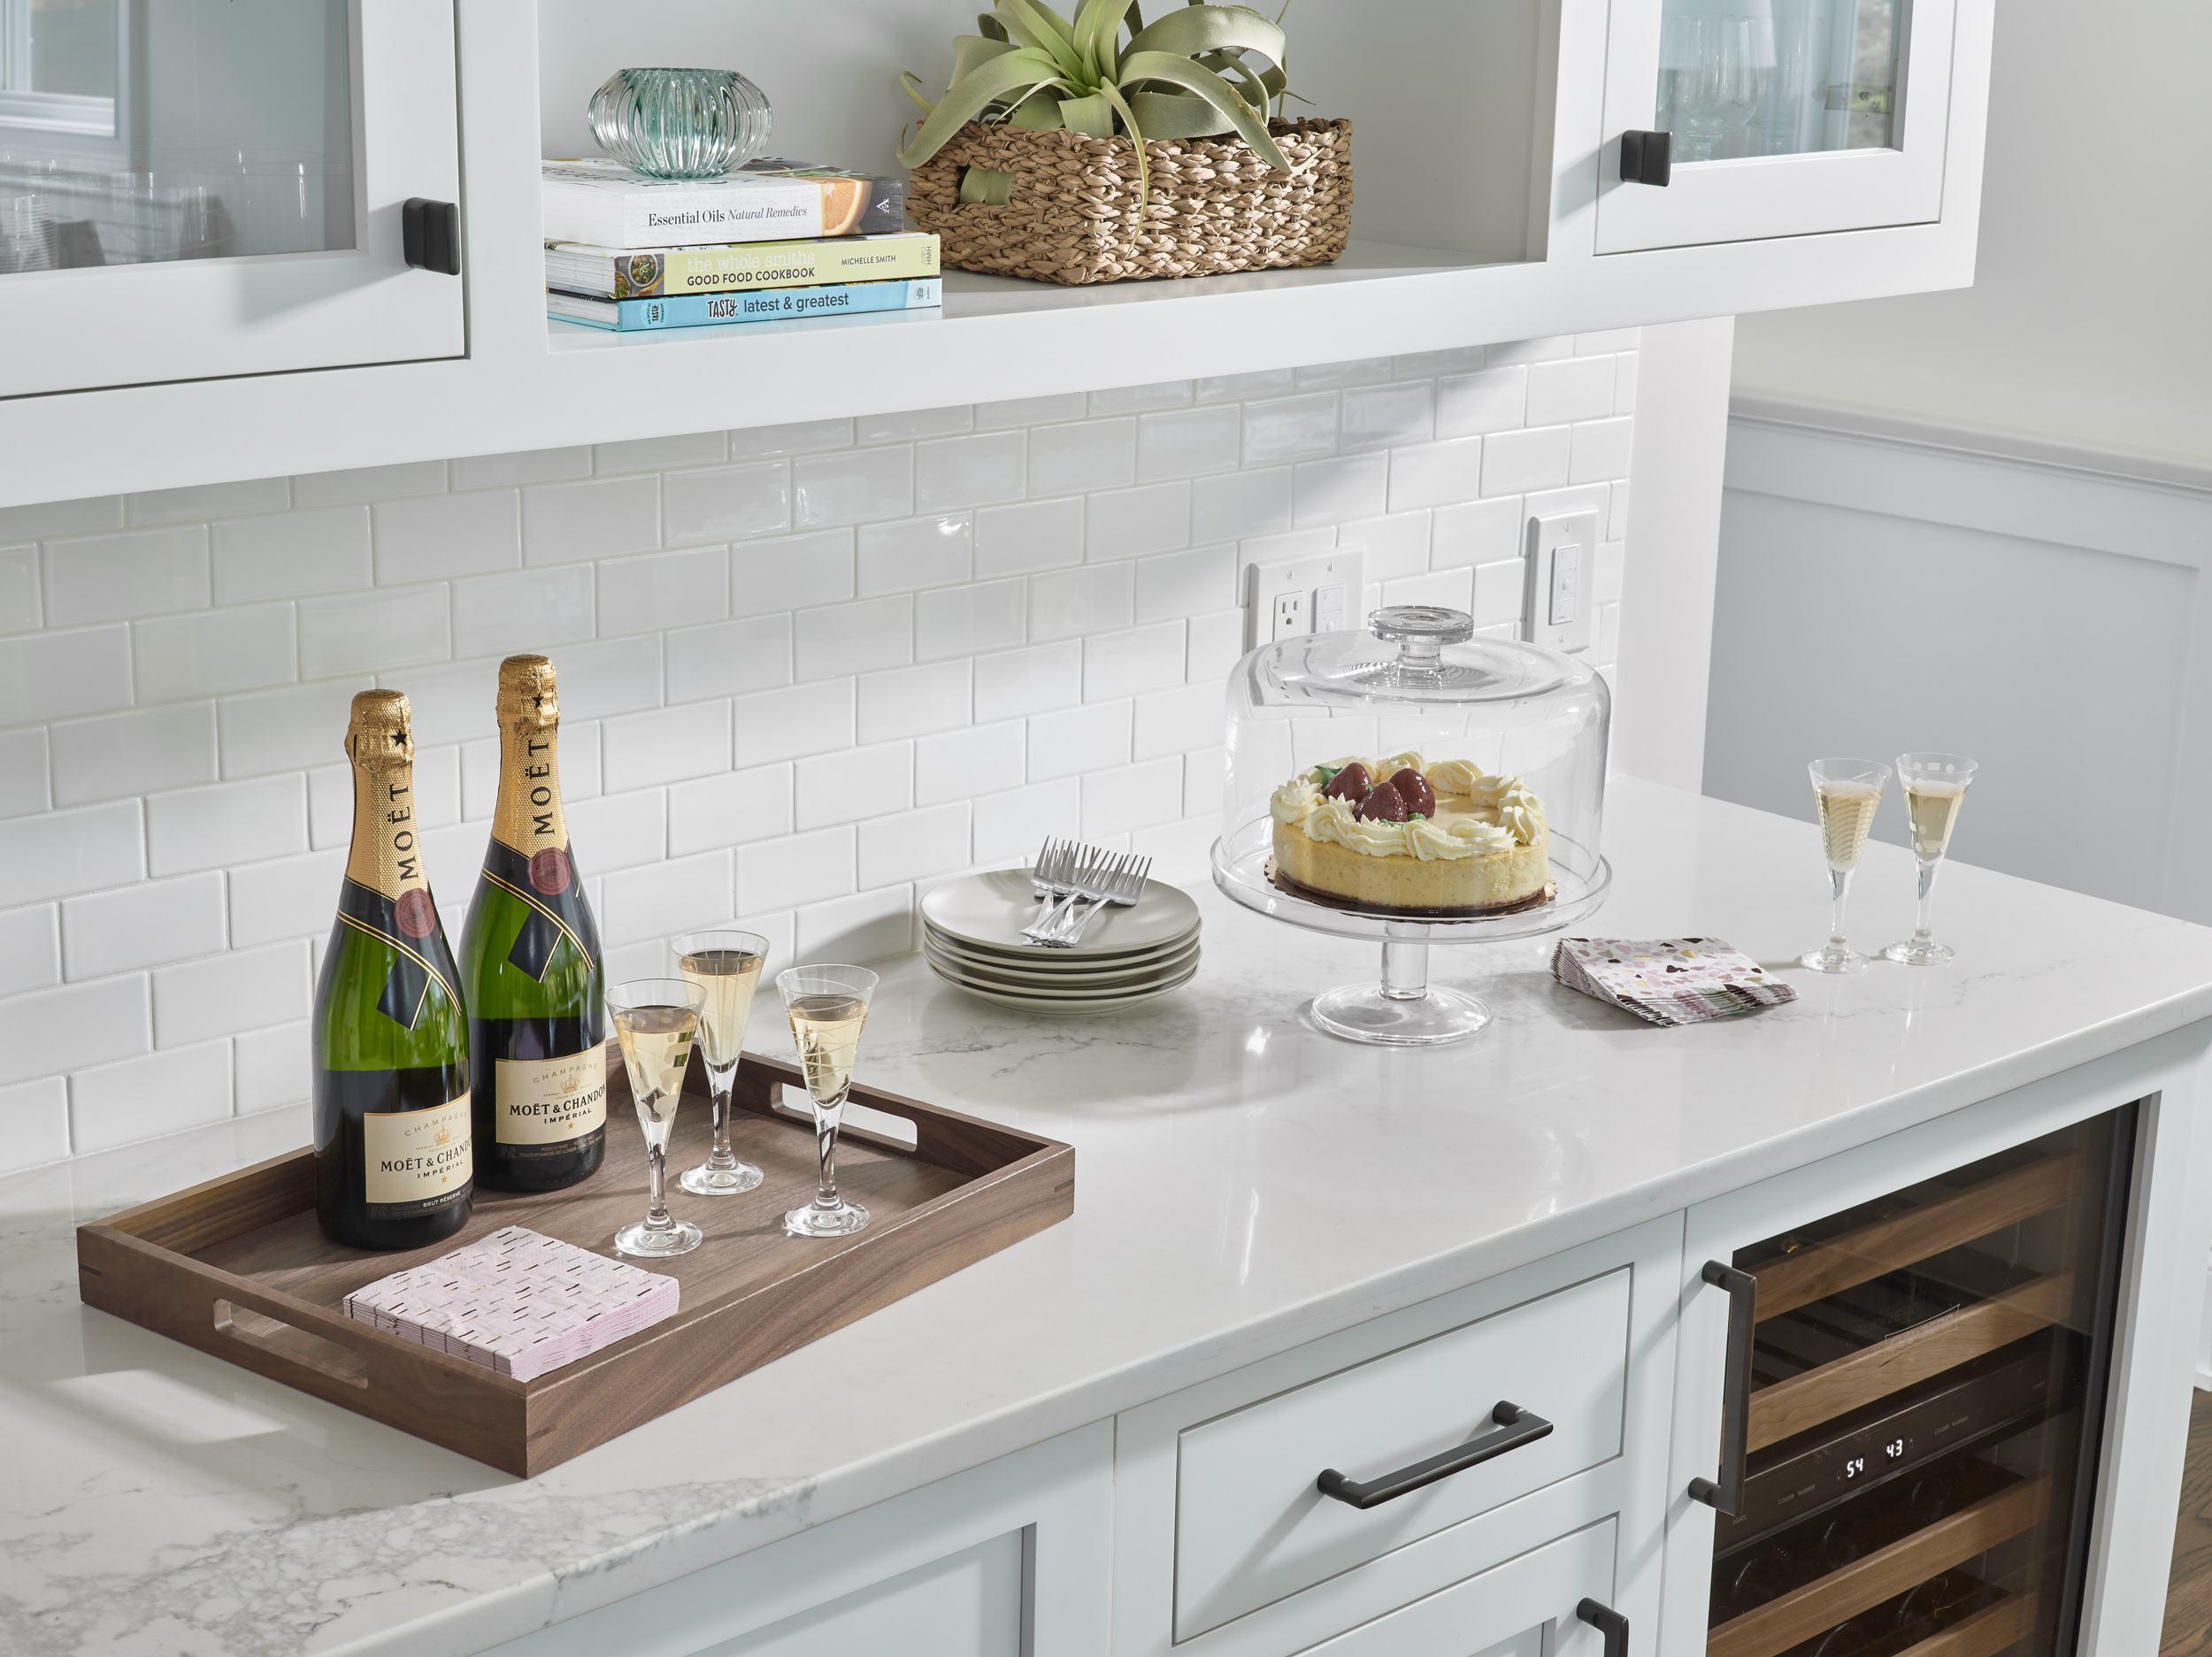 PinneyDesigns_UpweyWellesley_KitchenBarVignette_Final_SMALL copy.jpg